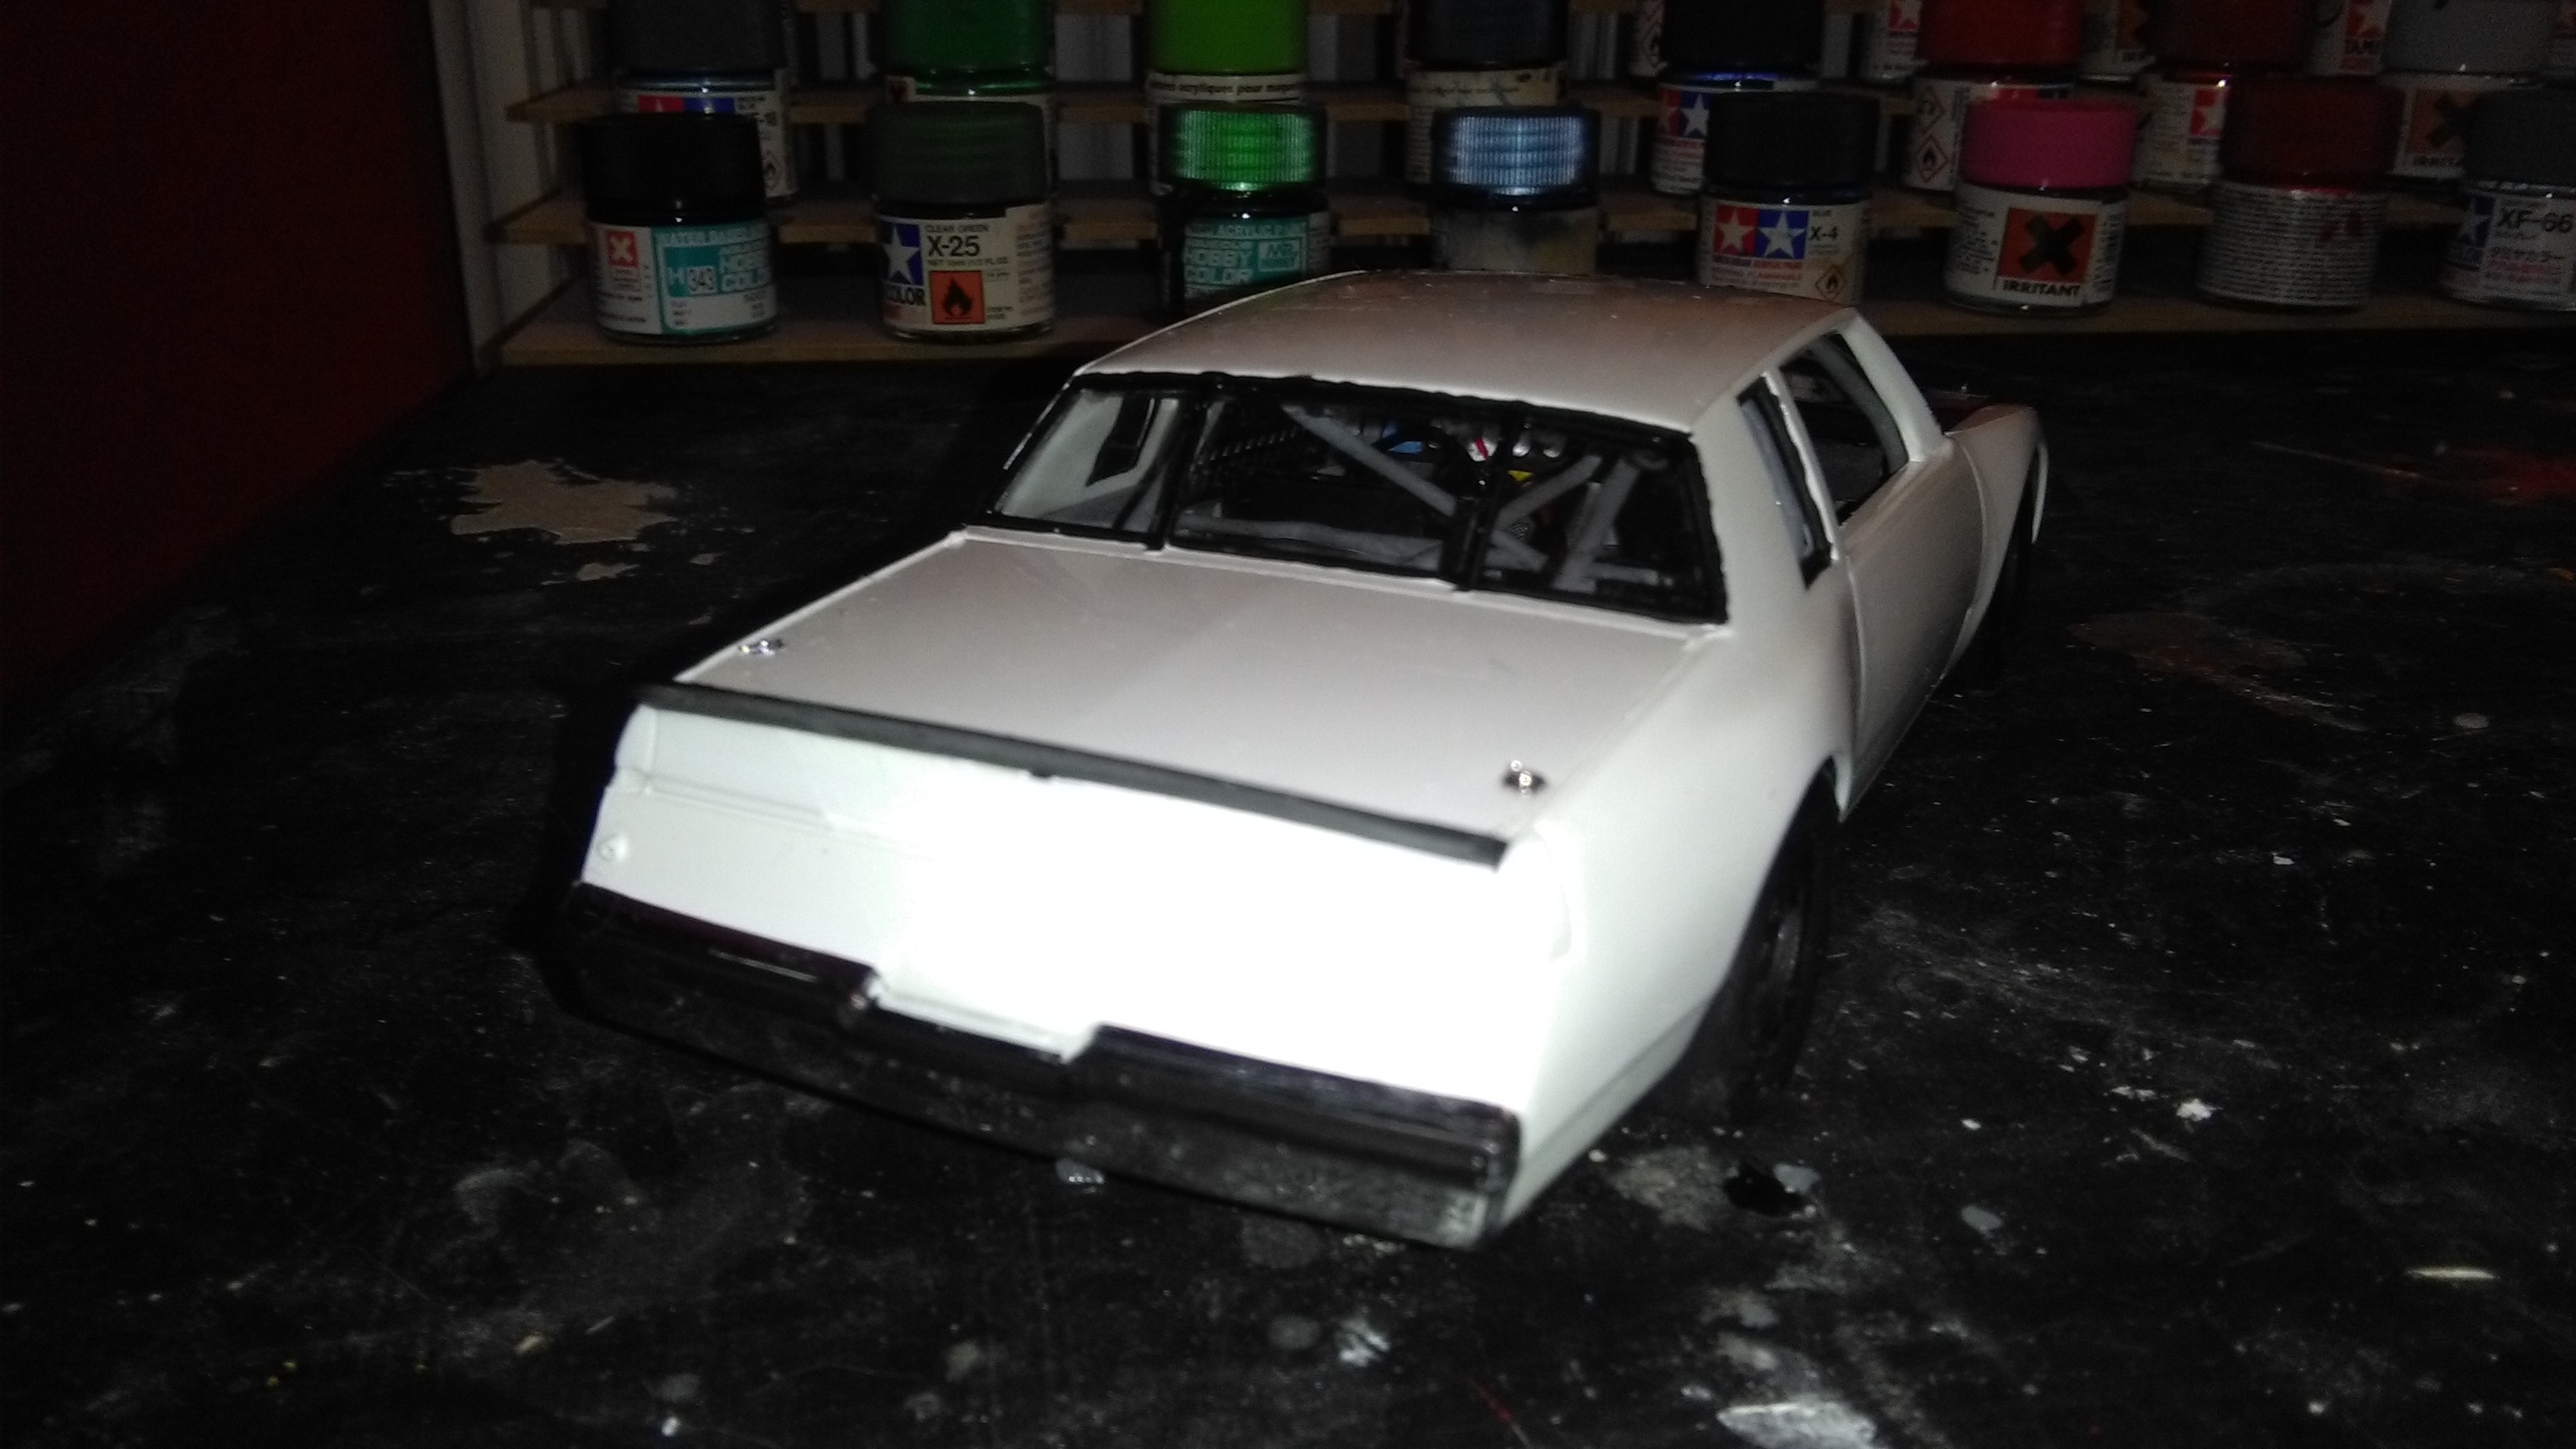 Buick Regal 1982 #52 Jimmy Means Broadway motor  247783IMG20170212183737